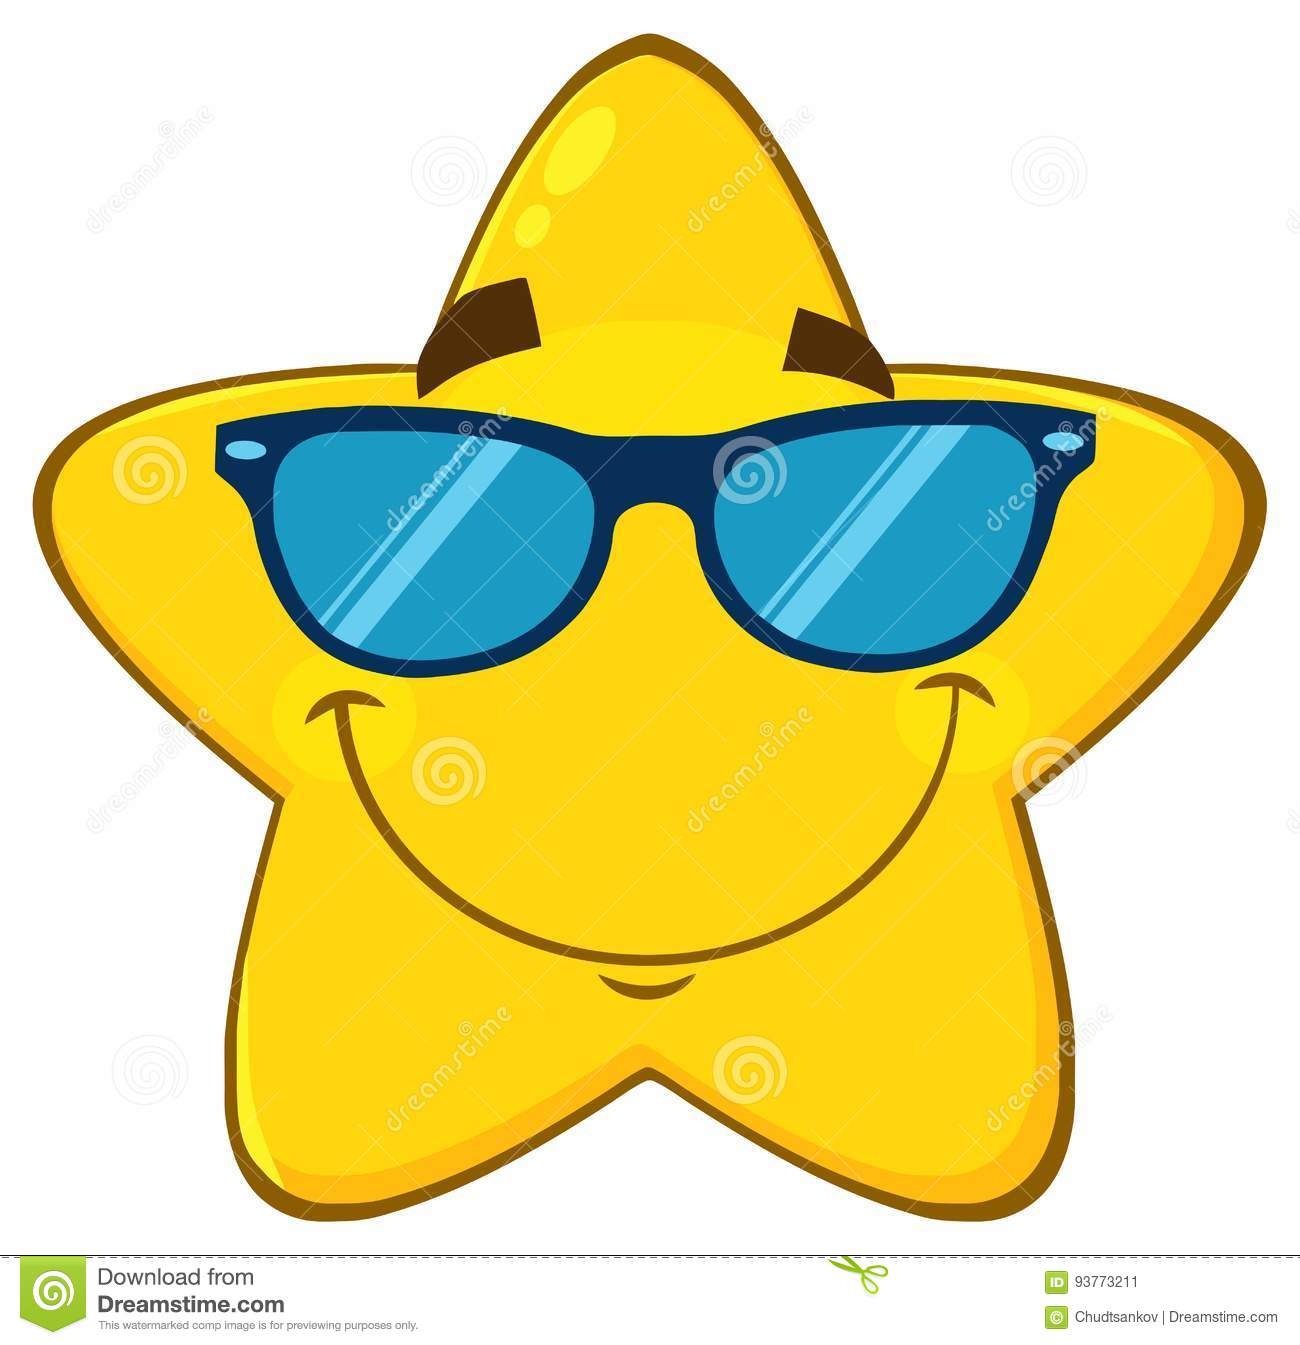 ef73b91f6970 Smiling Yellow Star Cartoon Emoji Face Character With Sunglasses ...